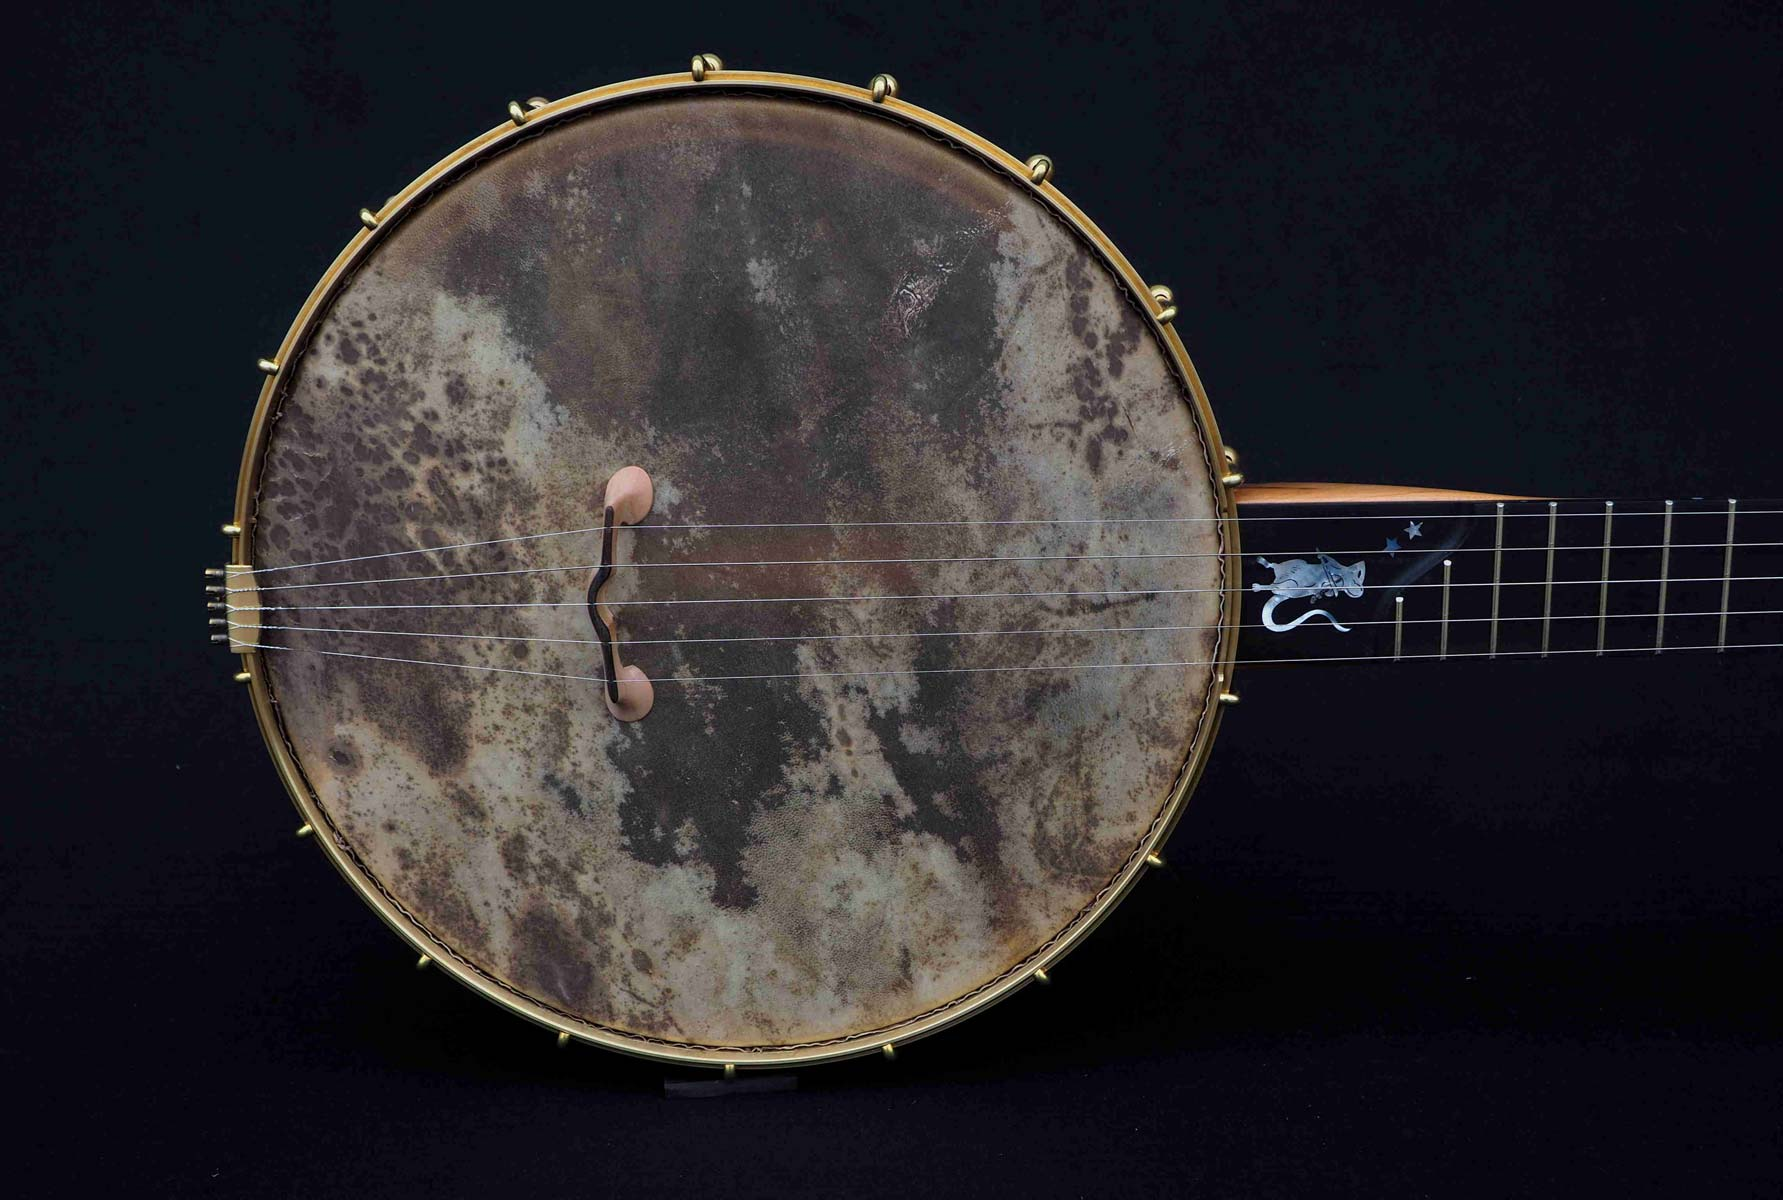 Eagle music 5 string Banjo vellum